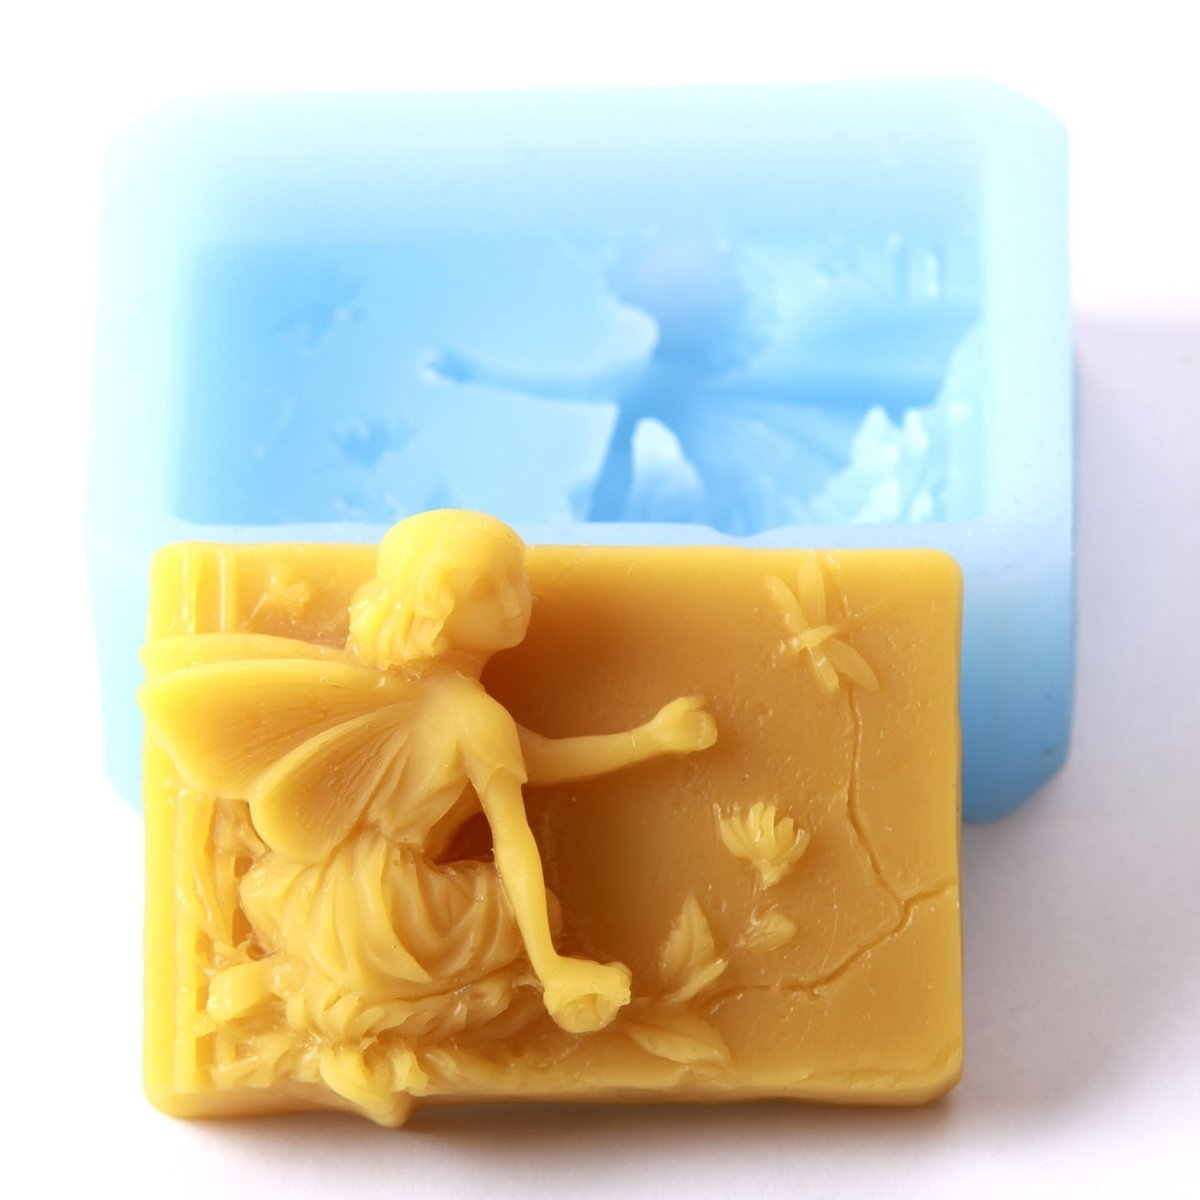 Fairy Sitting Rectangle Silicone Soap Mould R0556 - Mystic Moments UK